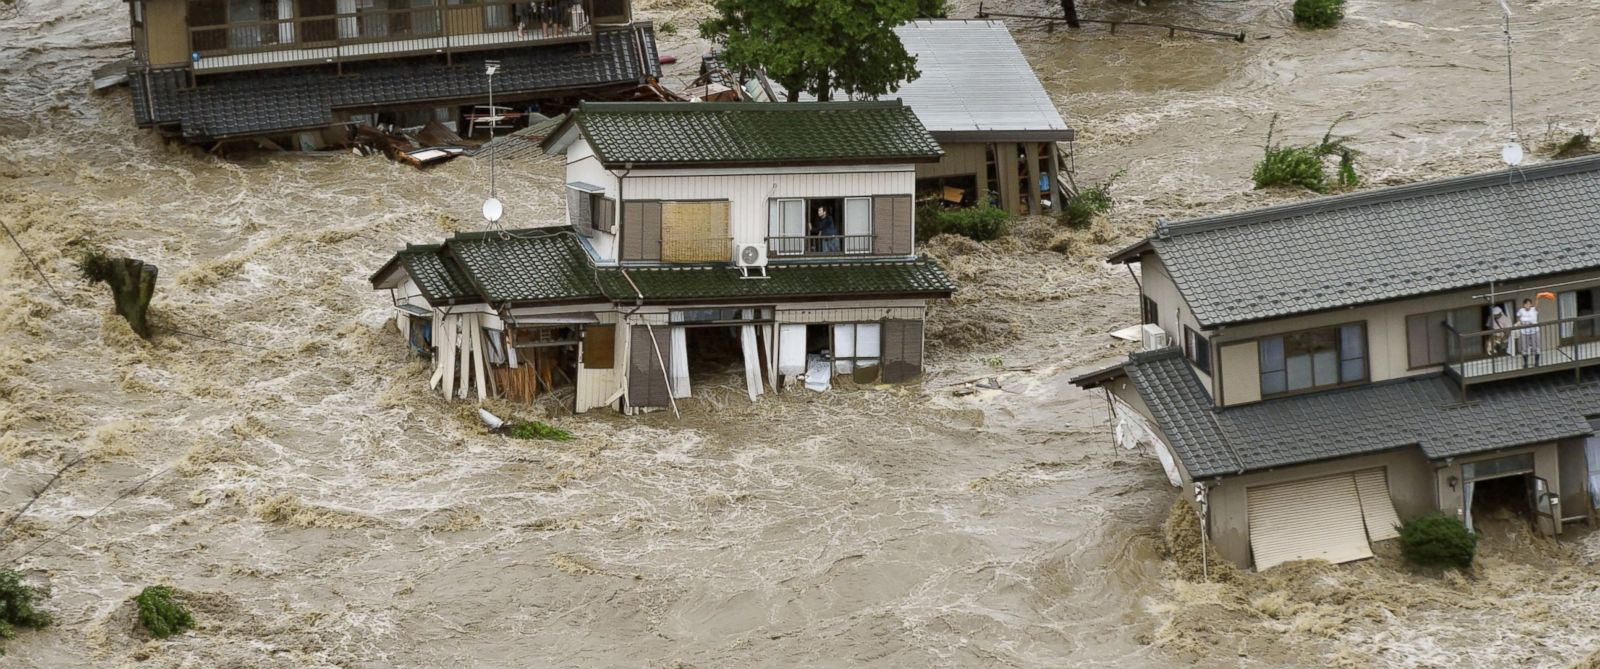 PHOTO: People inside houses wait to be rescued as the houses are submerged in water flooded from a river in Joso, Ibaraki prefecture, northeast of Tokyo Thursday, Sept. 10, 2015.